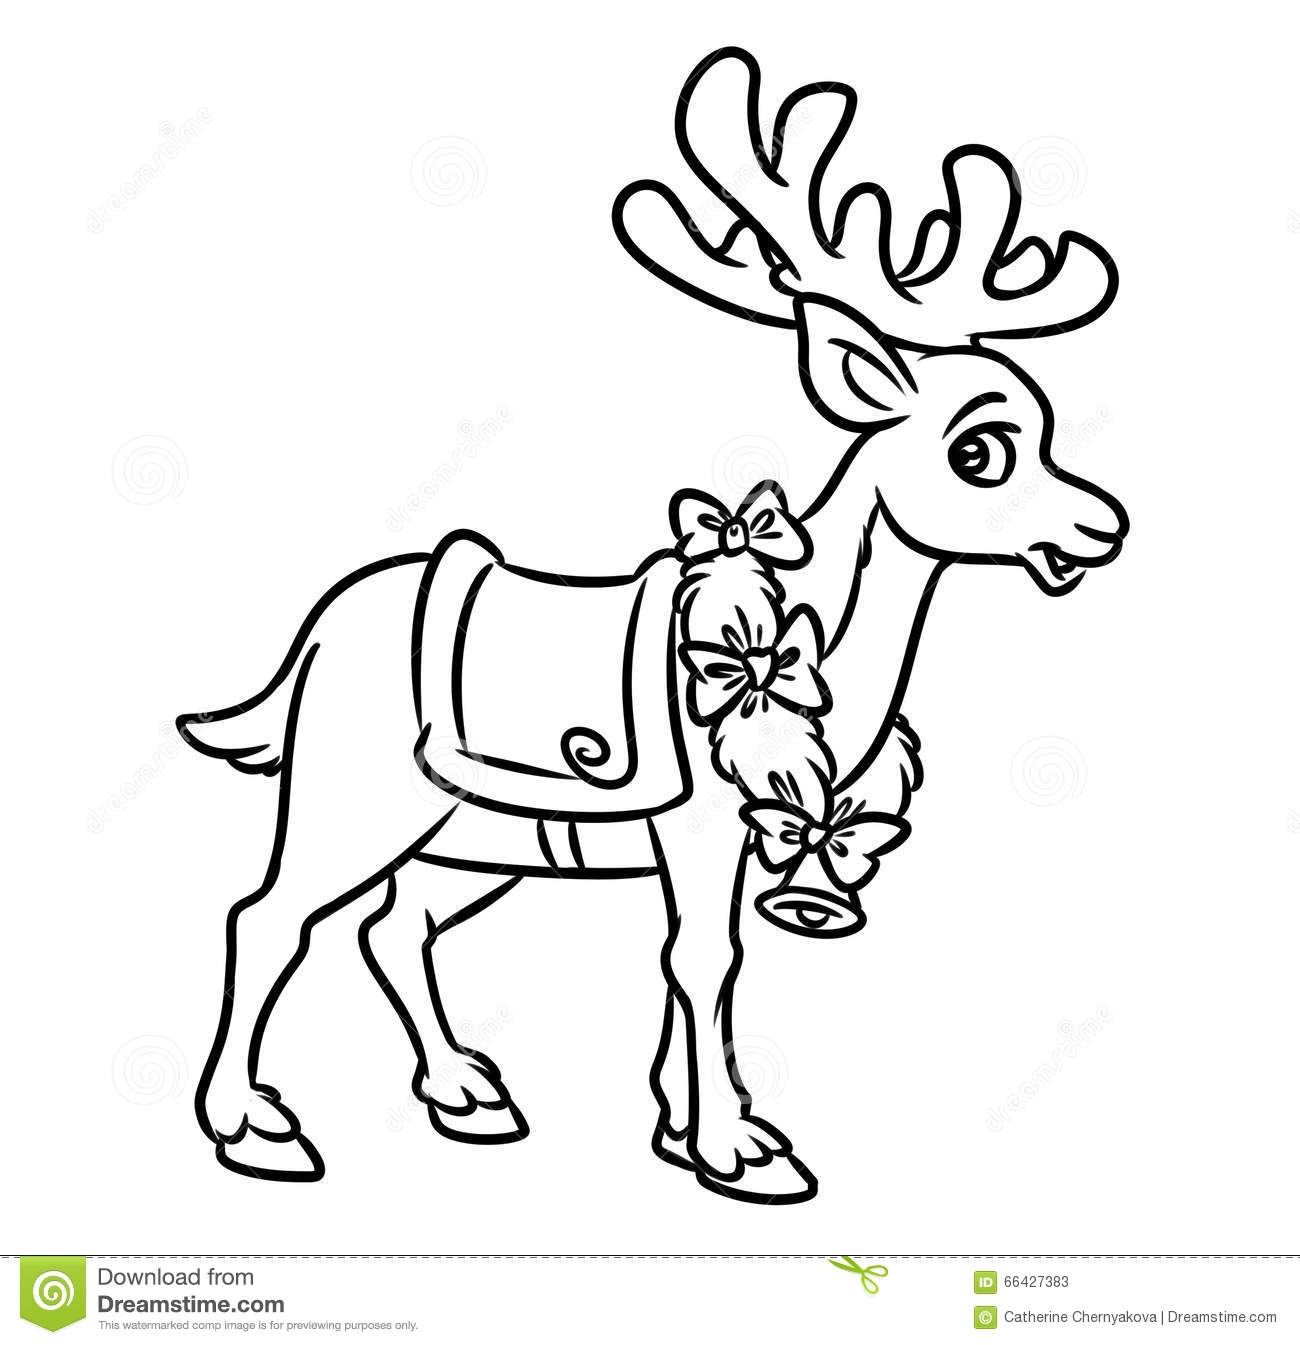 santa and reindeer coloring pages stock illustration christmas santa reindeer coloring pages image animal character